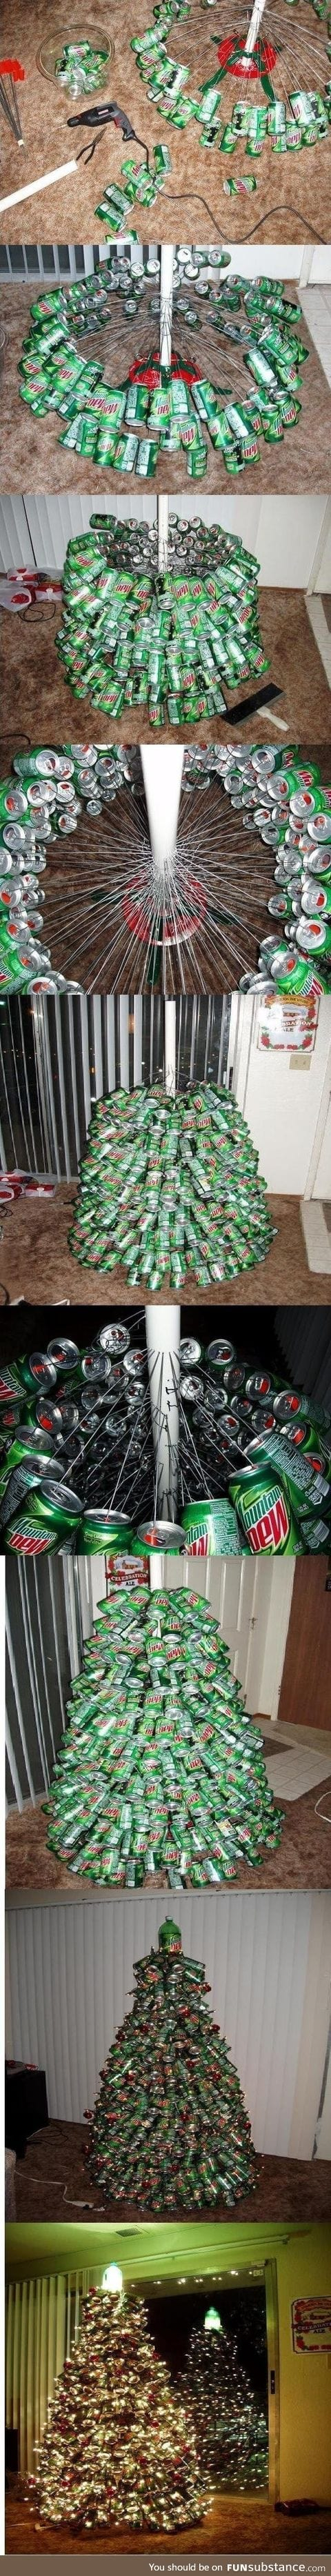 Christmas tree from cans